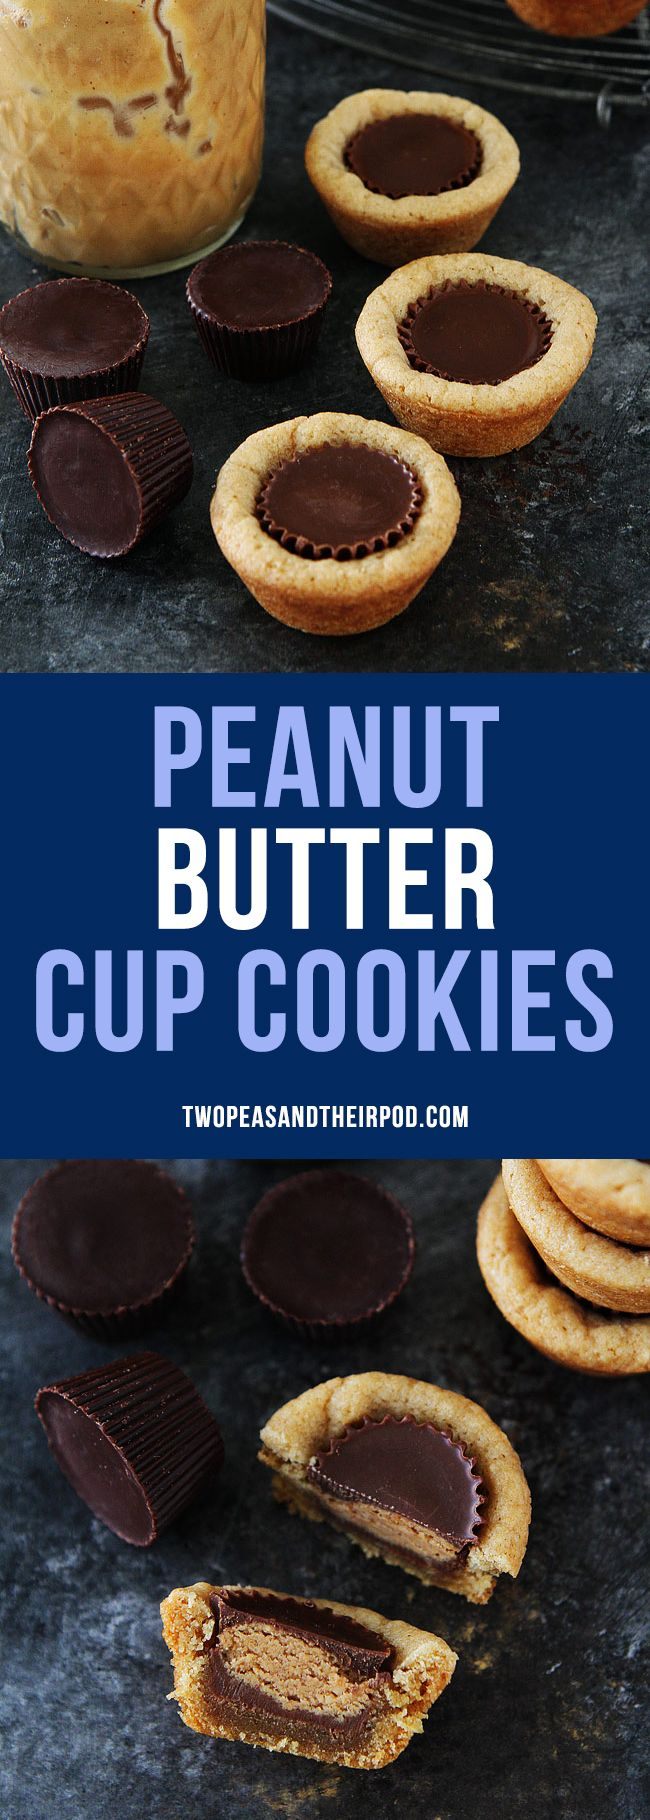 Peanut Butter Cup Cookies are a peanut butter lover's dream! You will love the peanut butter cup inside! A fun cookie to make and eat! #cookies #holidays #peanutbutter